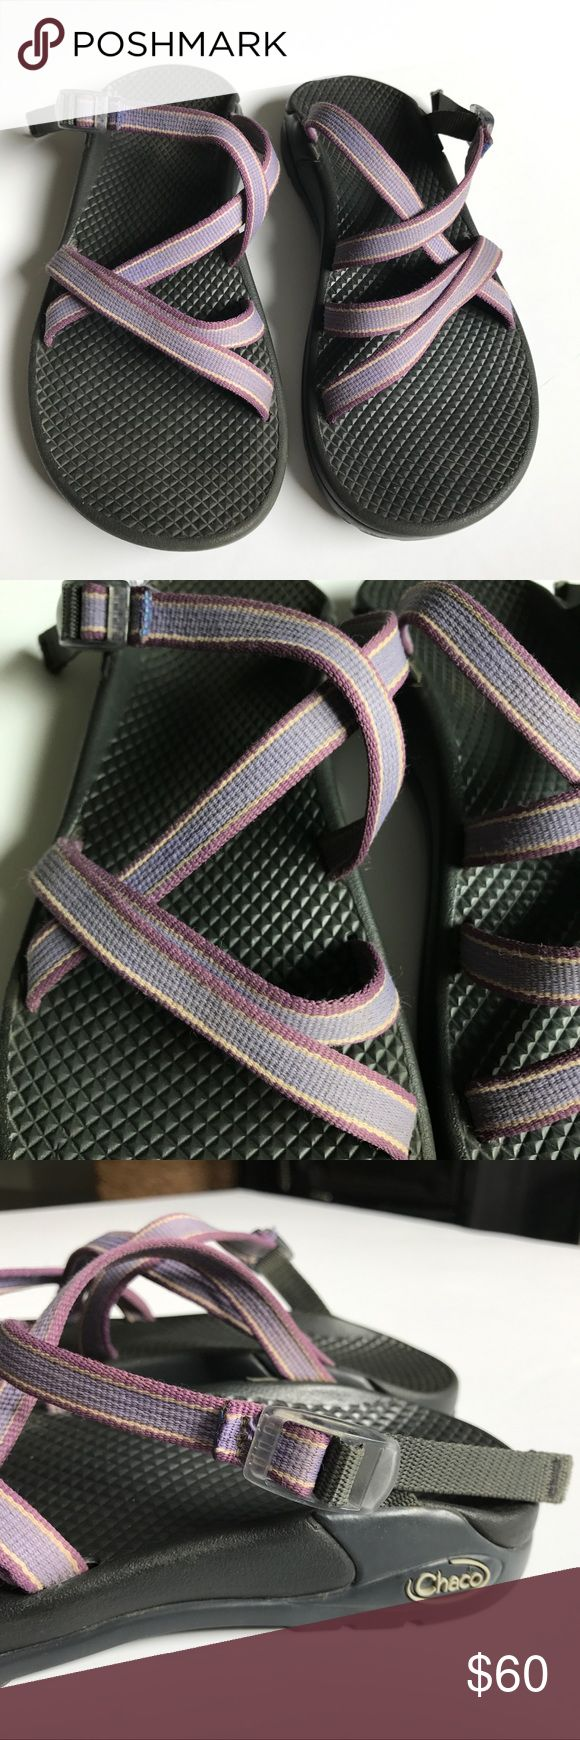 Chacos Purple Backless Sports Sandals Size 7 Gently pre-worn. Super comfortable. Vibram soles, great for outdoors. Straps are various shades of purple/lavender and Ivory/cream/tan. Non-smoking home. Chaco Shoes